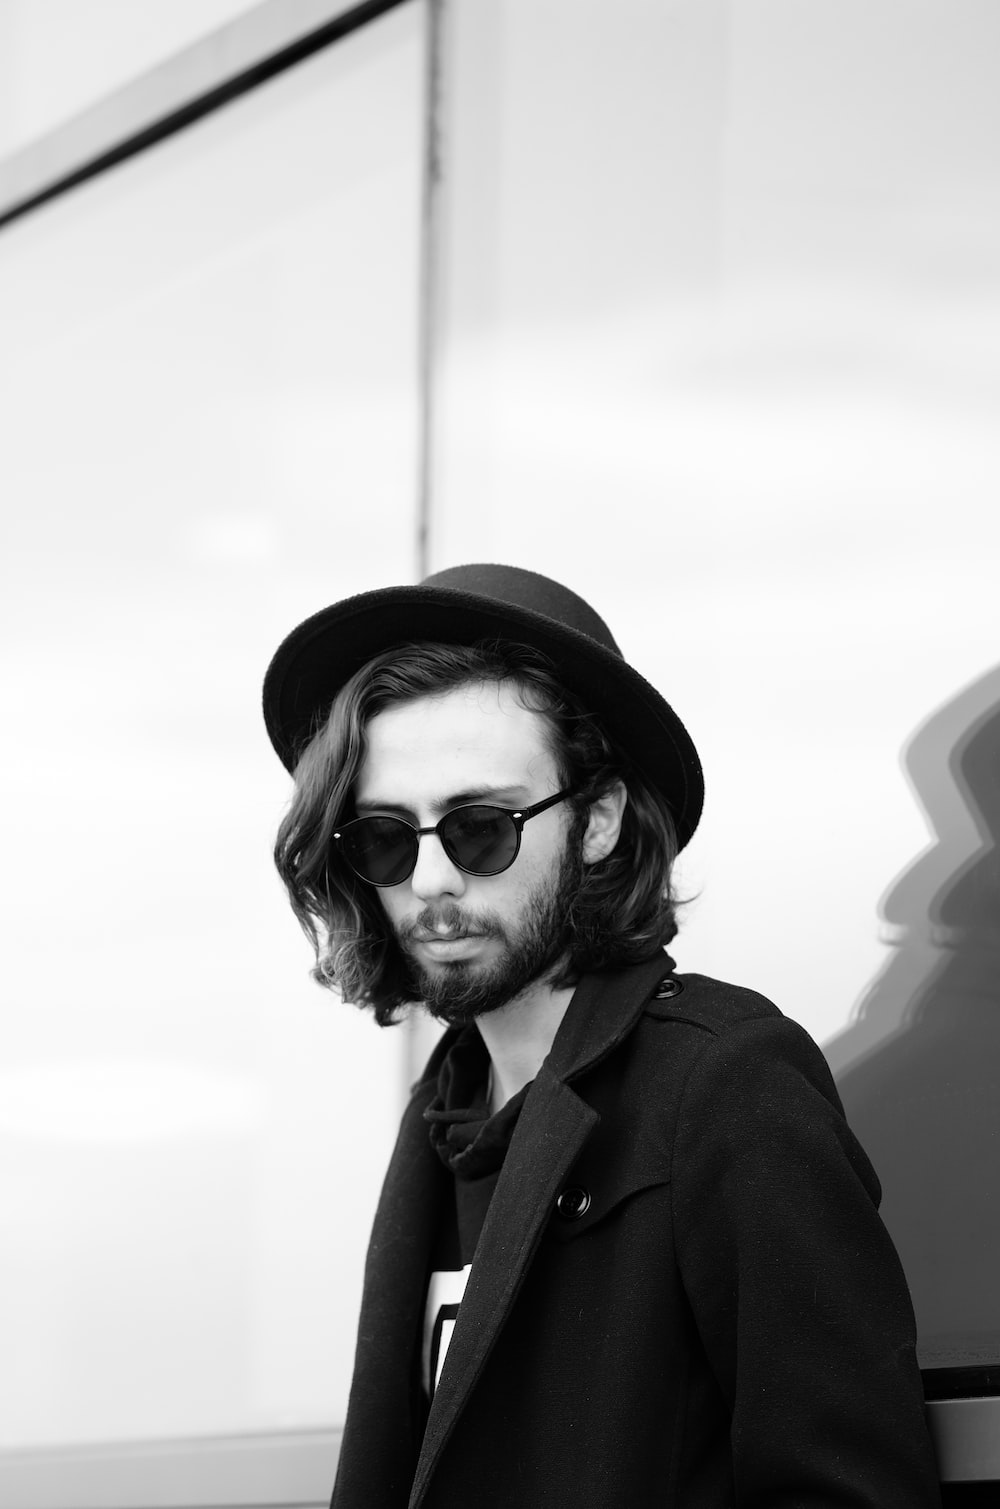 grayscale photo of man wearing sunglasses and hat